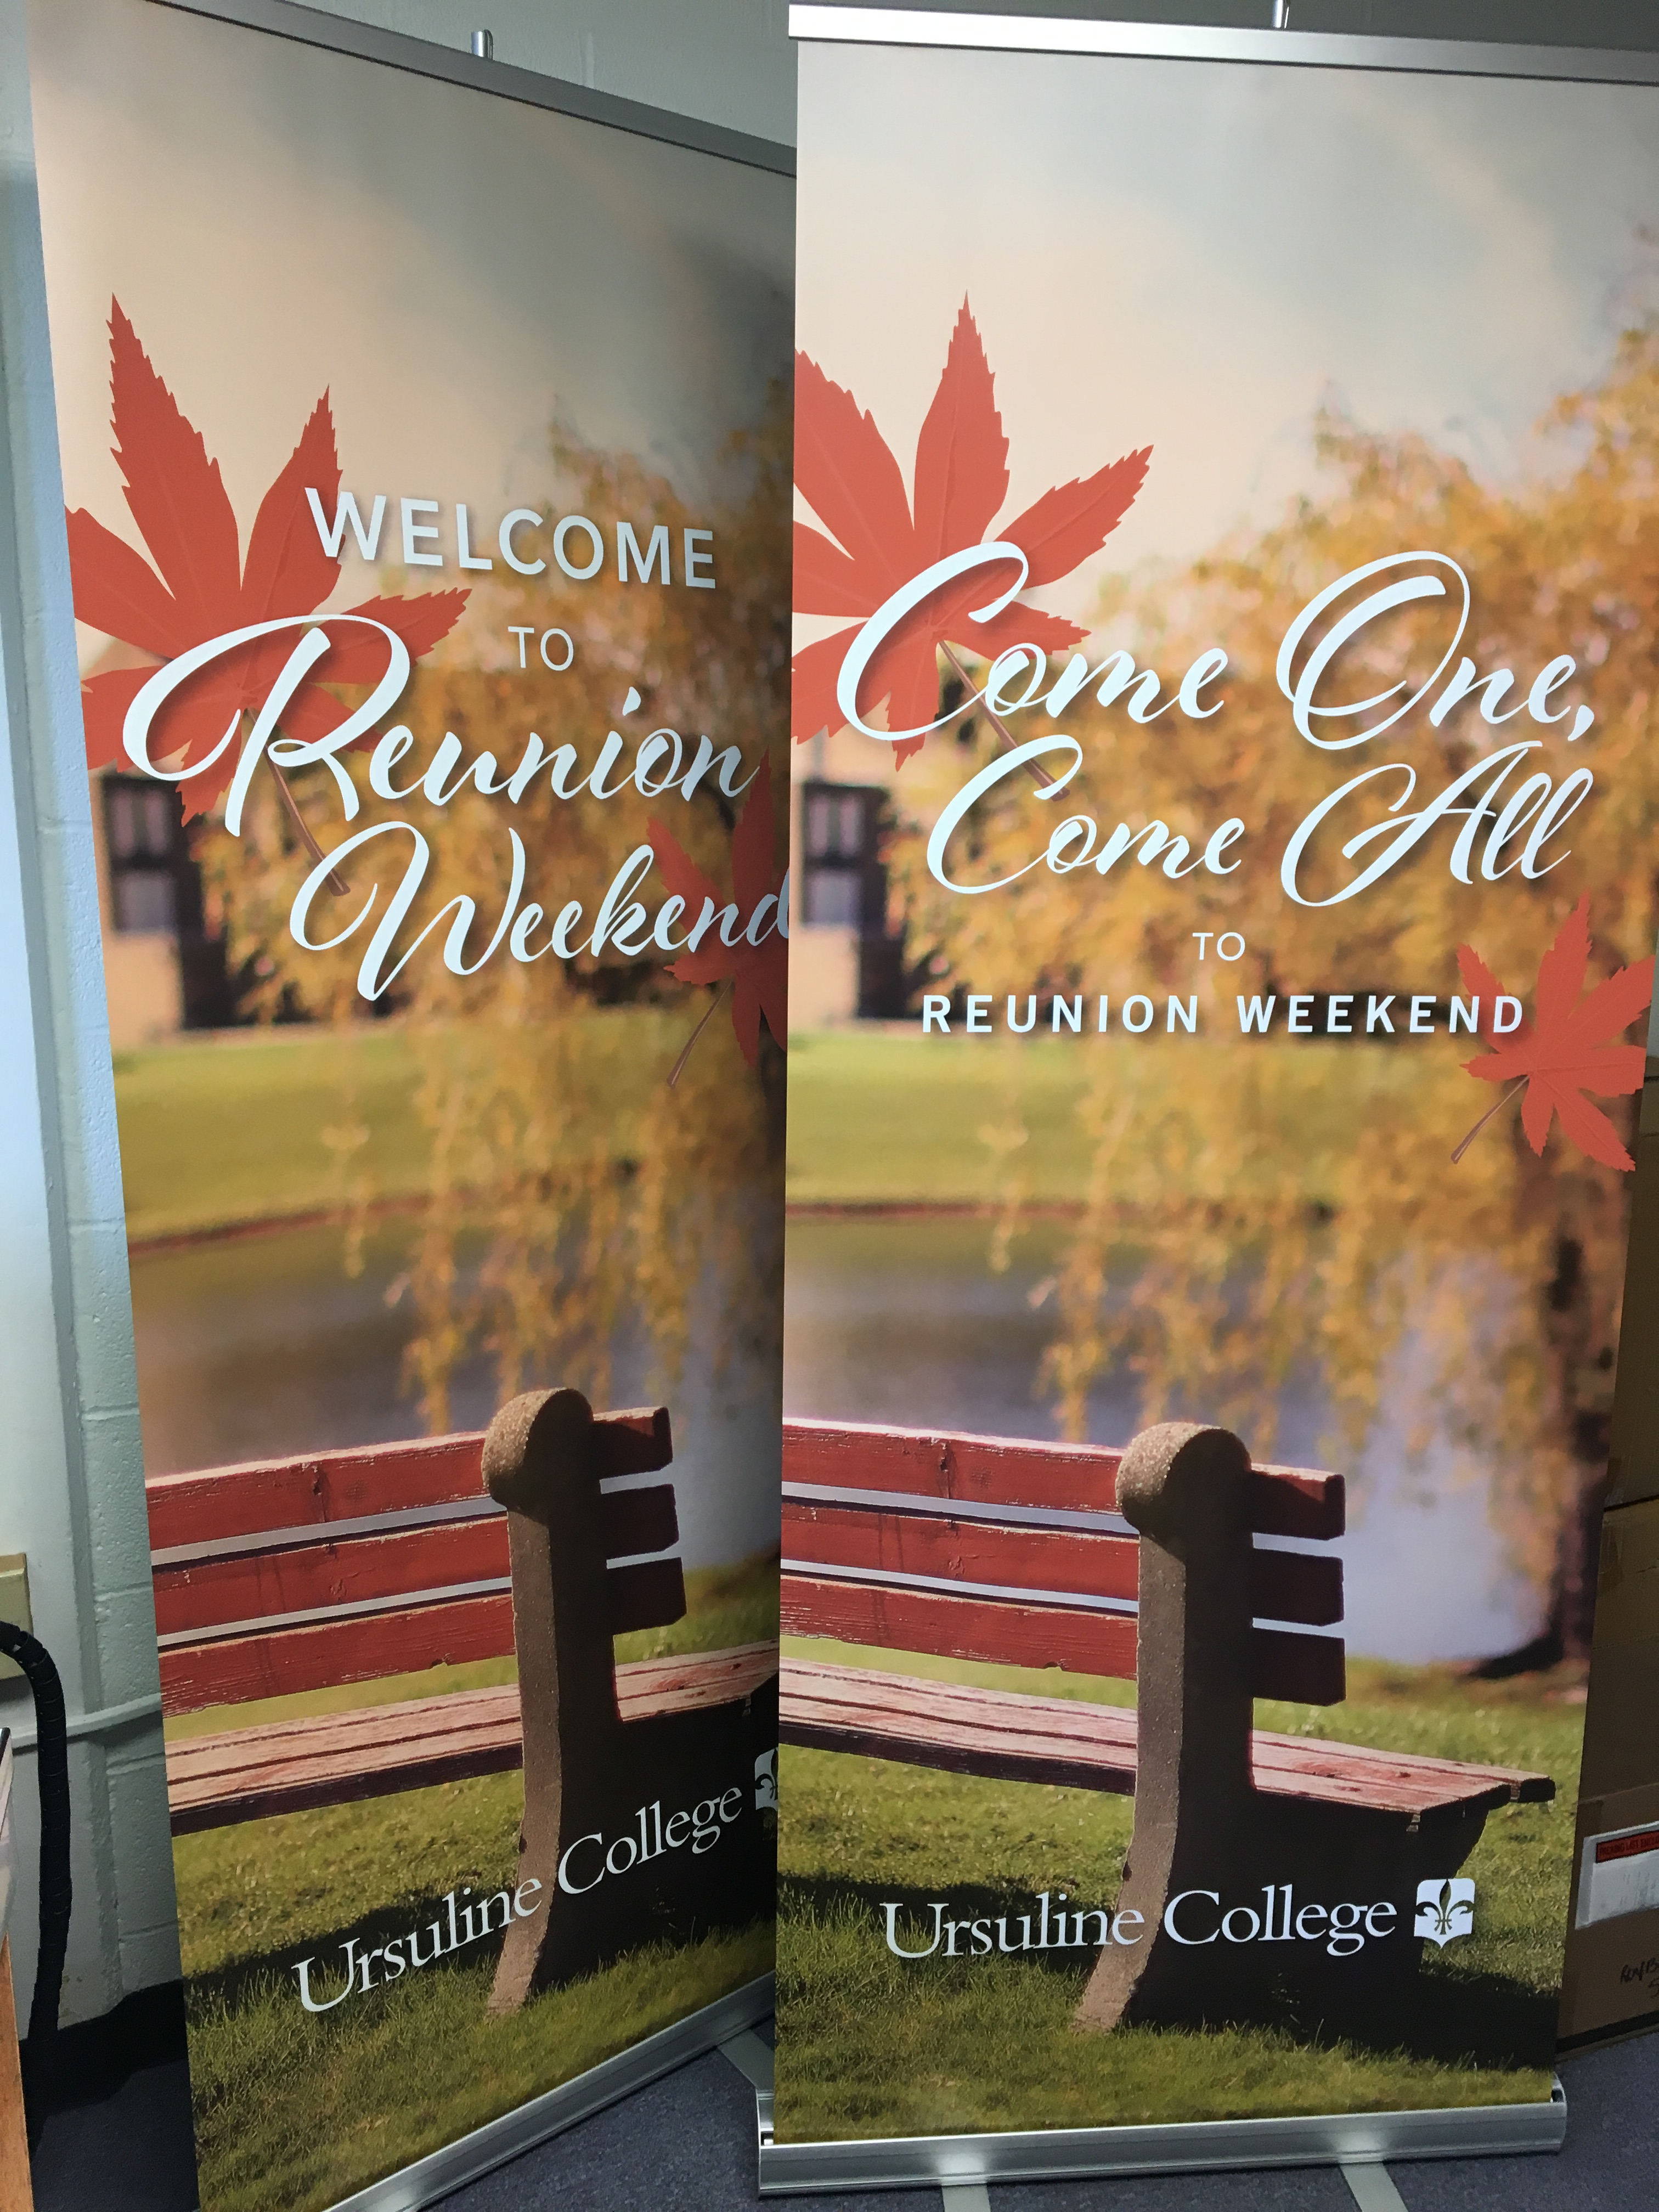 Banners from Reunion Weekend